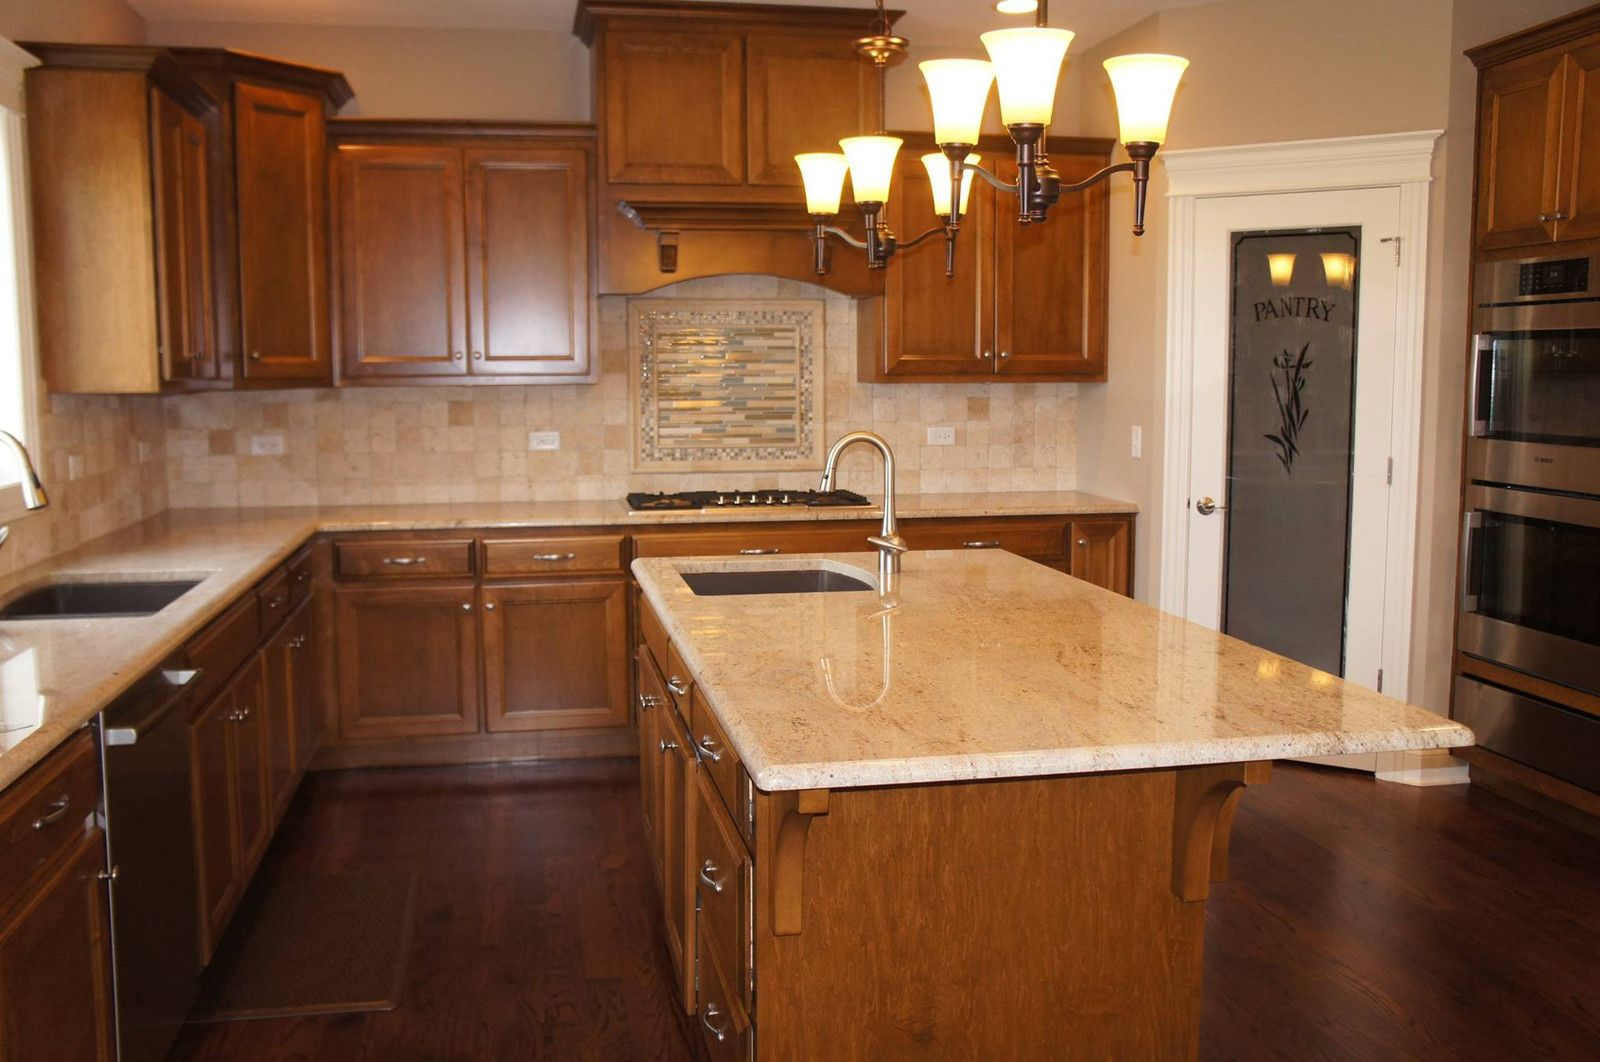 Image Result For Astoria Granite Countertops Kitchen Remodel